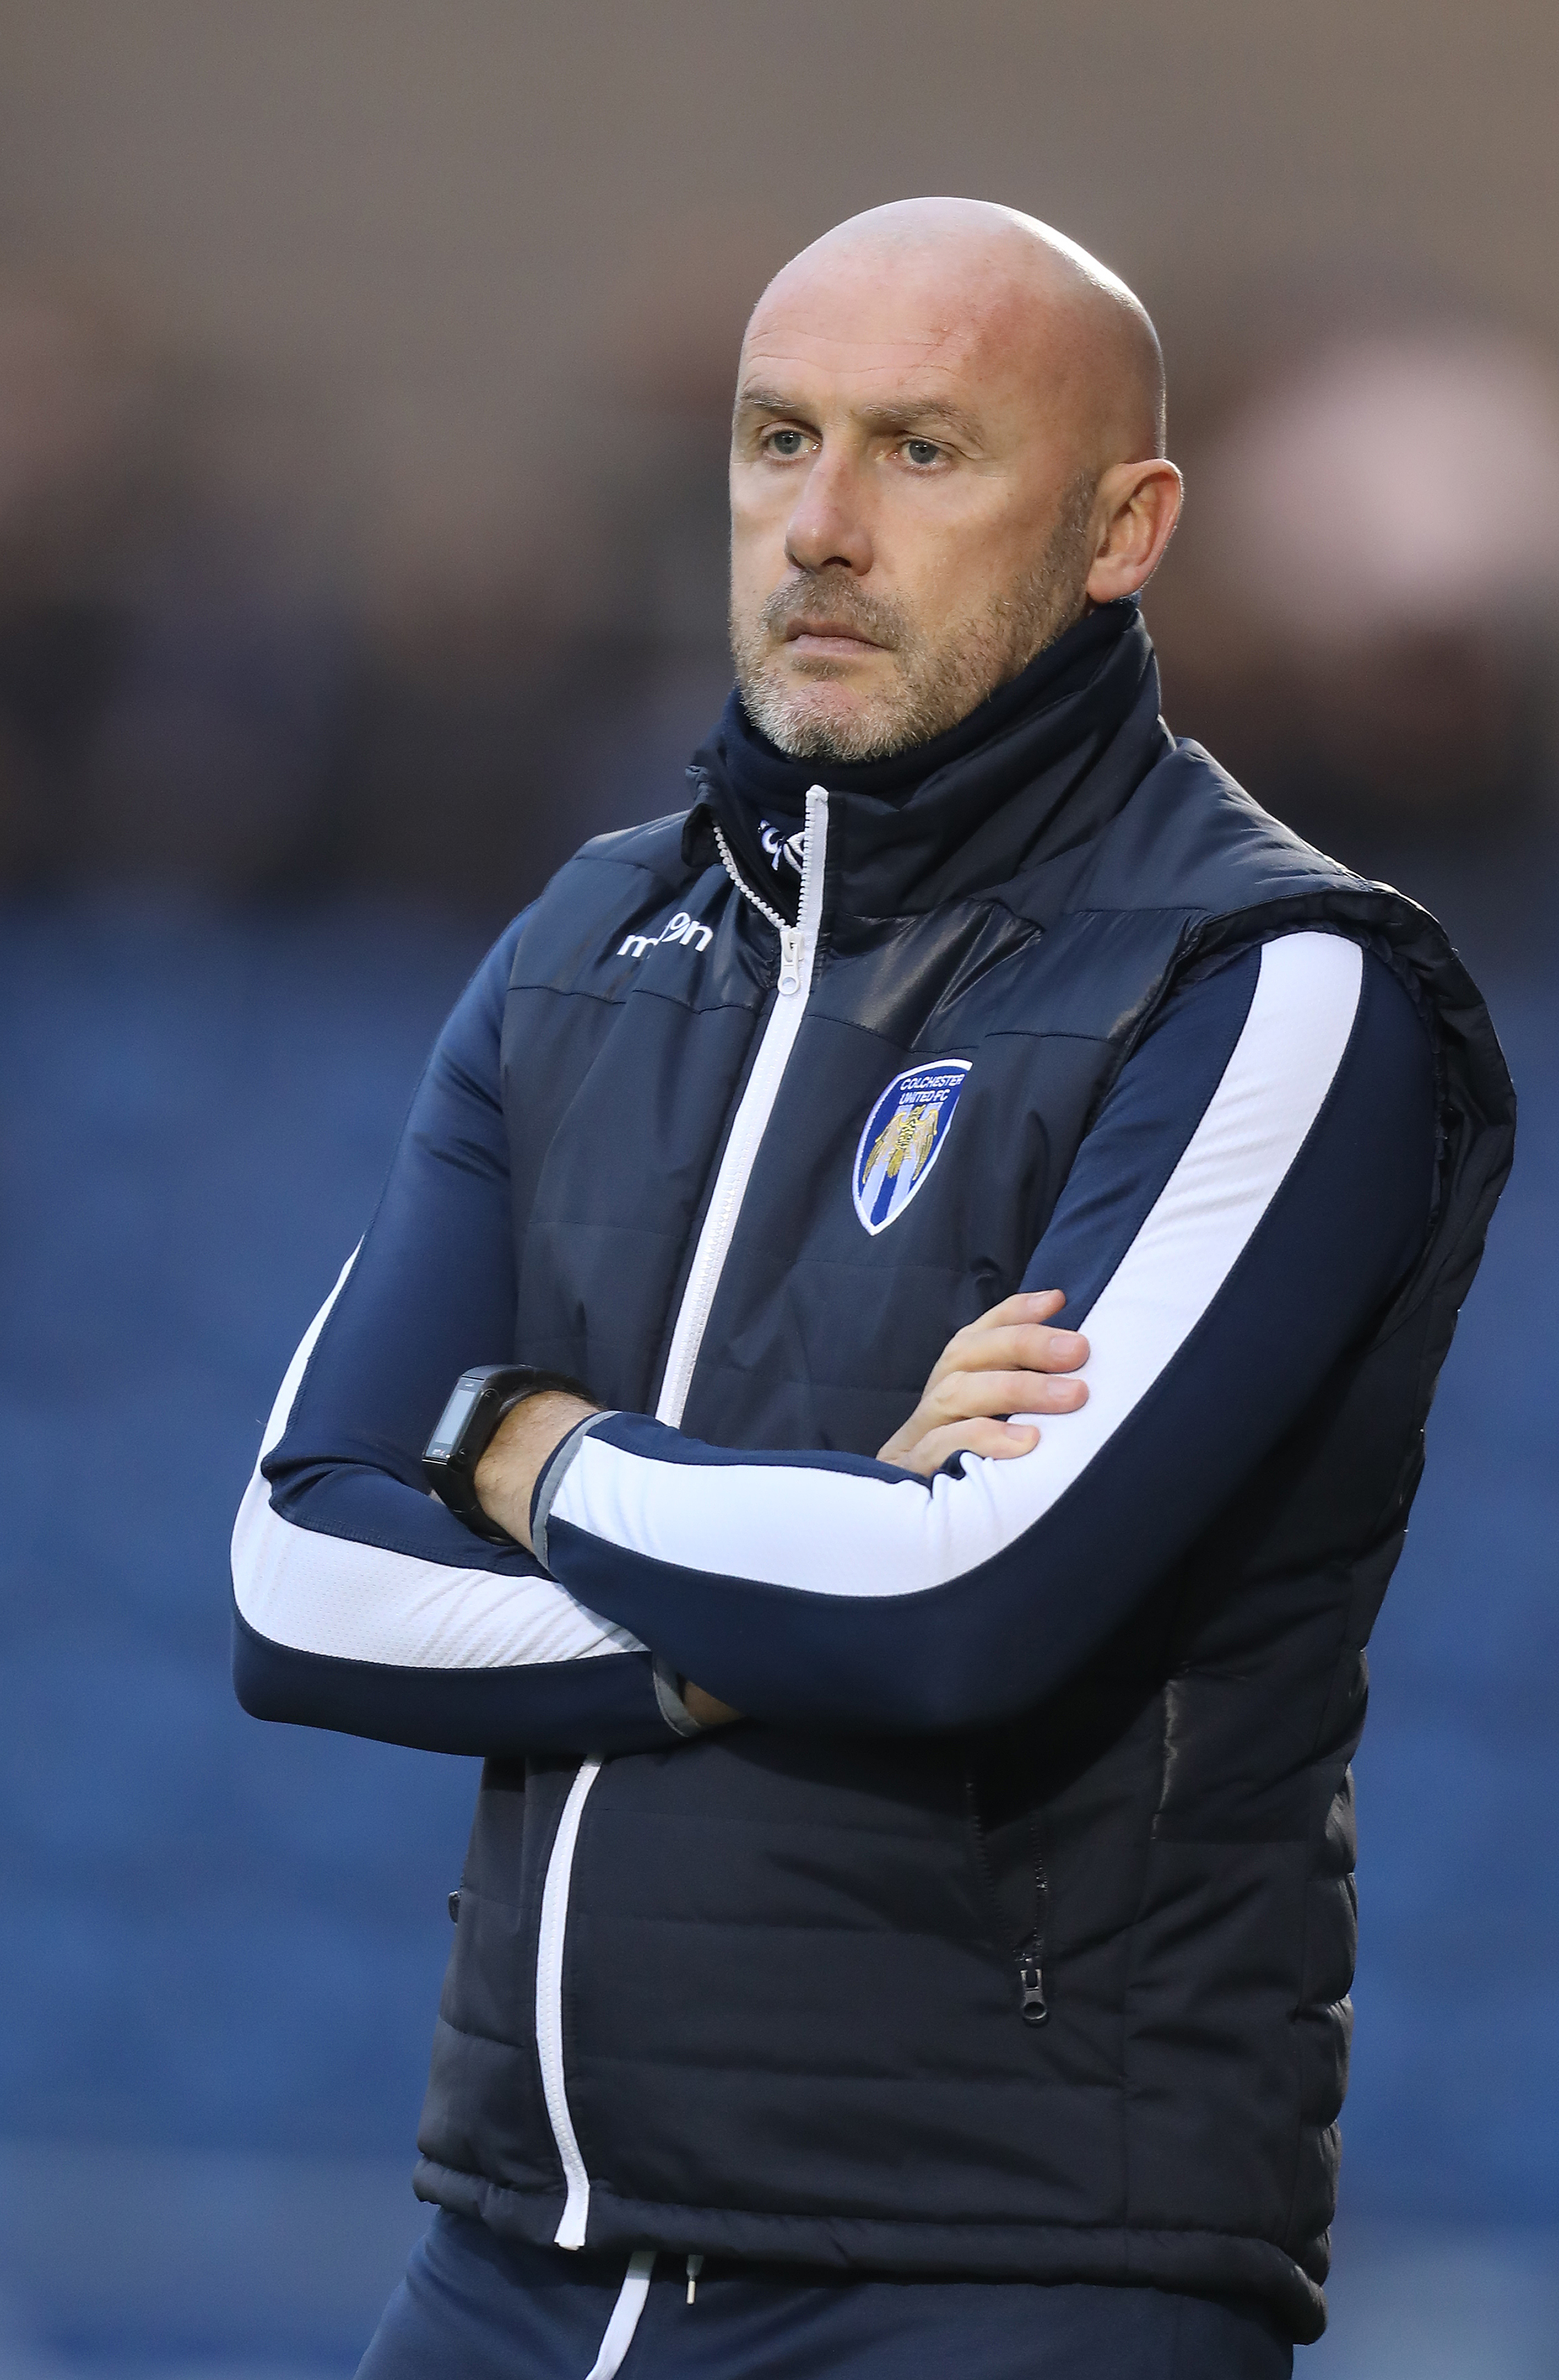 Return to action - Colchester United head coach John McGreal is looking forward to seeing his side take on Macclesfield Town Picture: STEVE BRADING